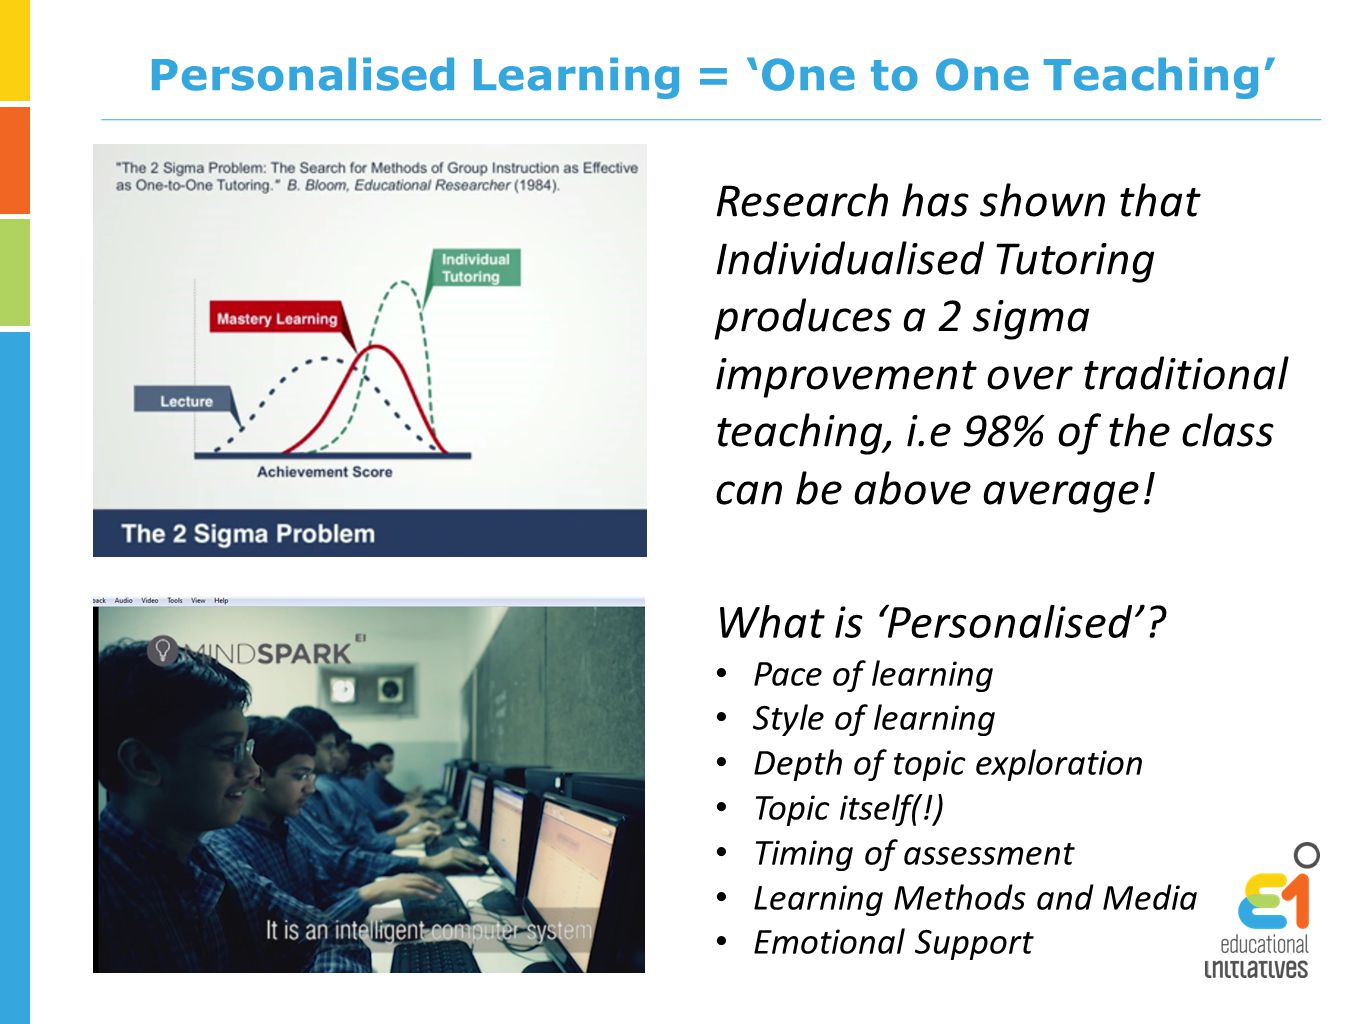 Personalised Learning = 'One to One Teaching' Research has shown that Individualised Tutoring produces a 2 sigma improvement over traditional teaching, i.e 98% of the class can be above average.